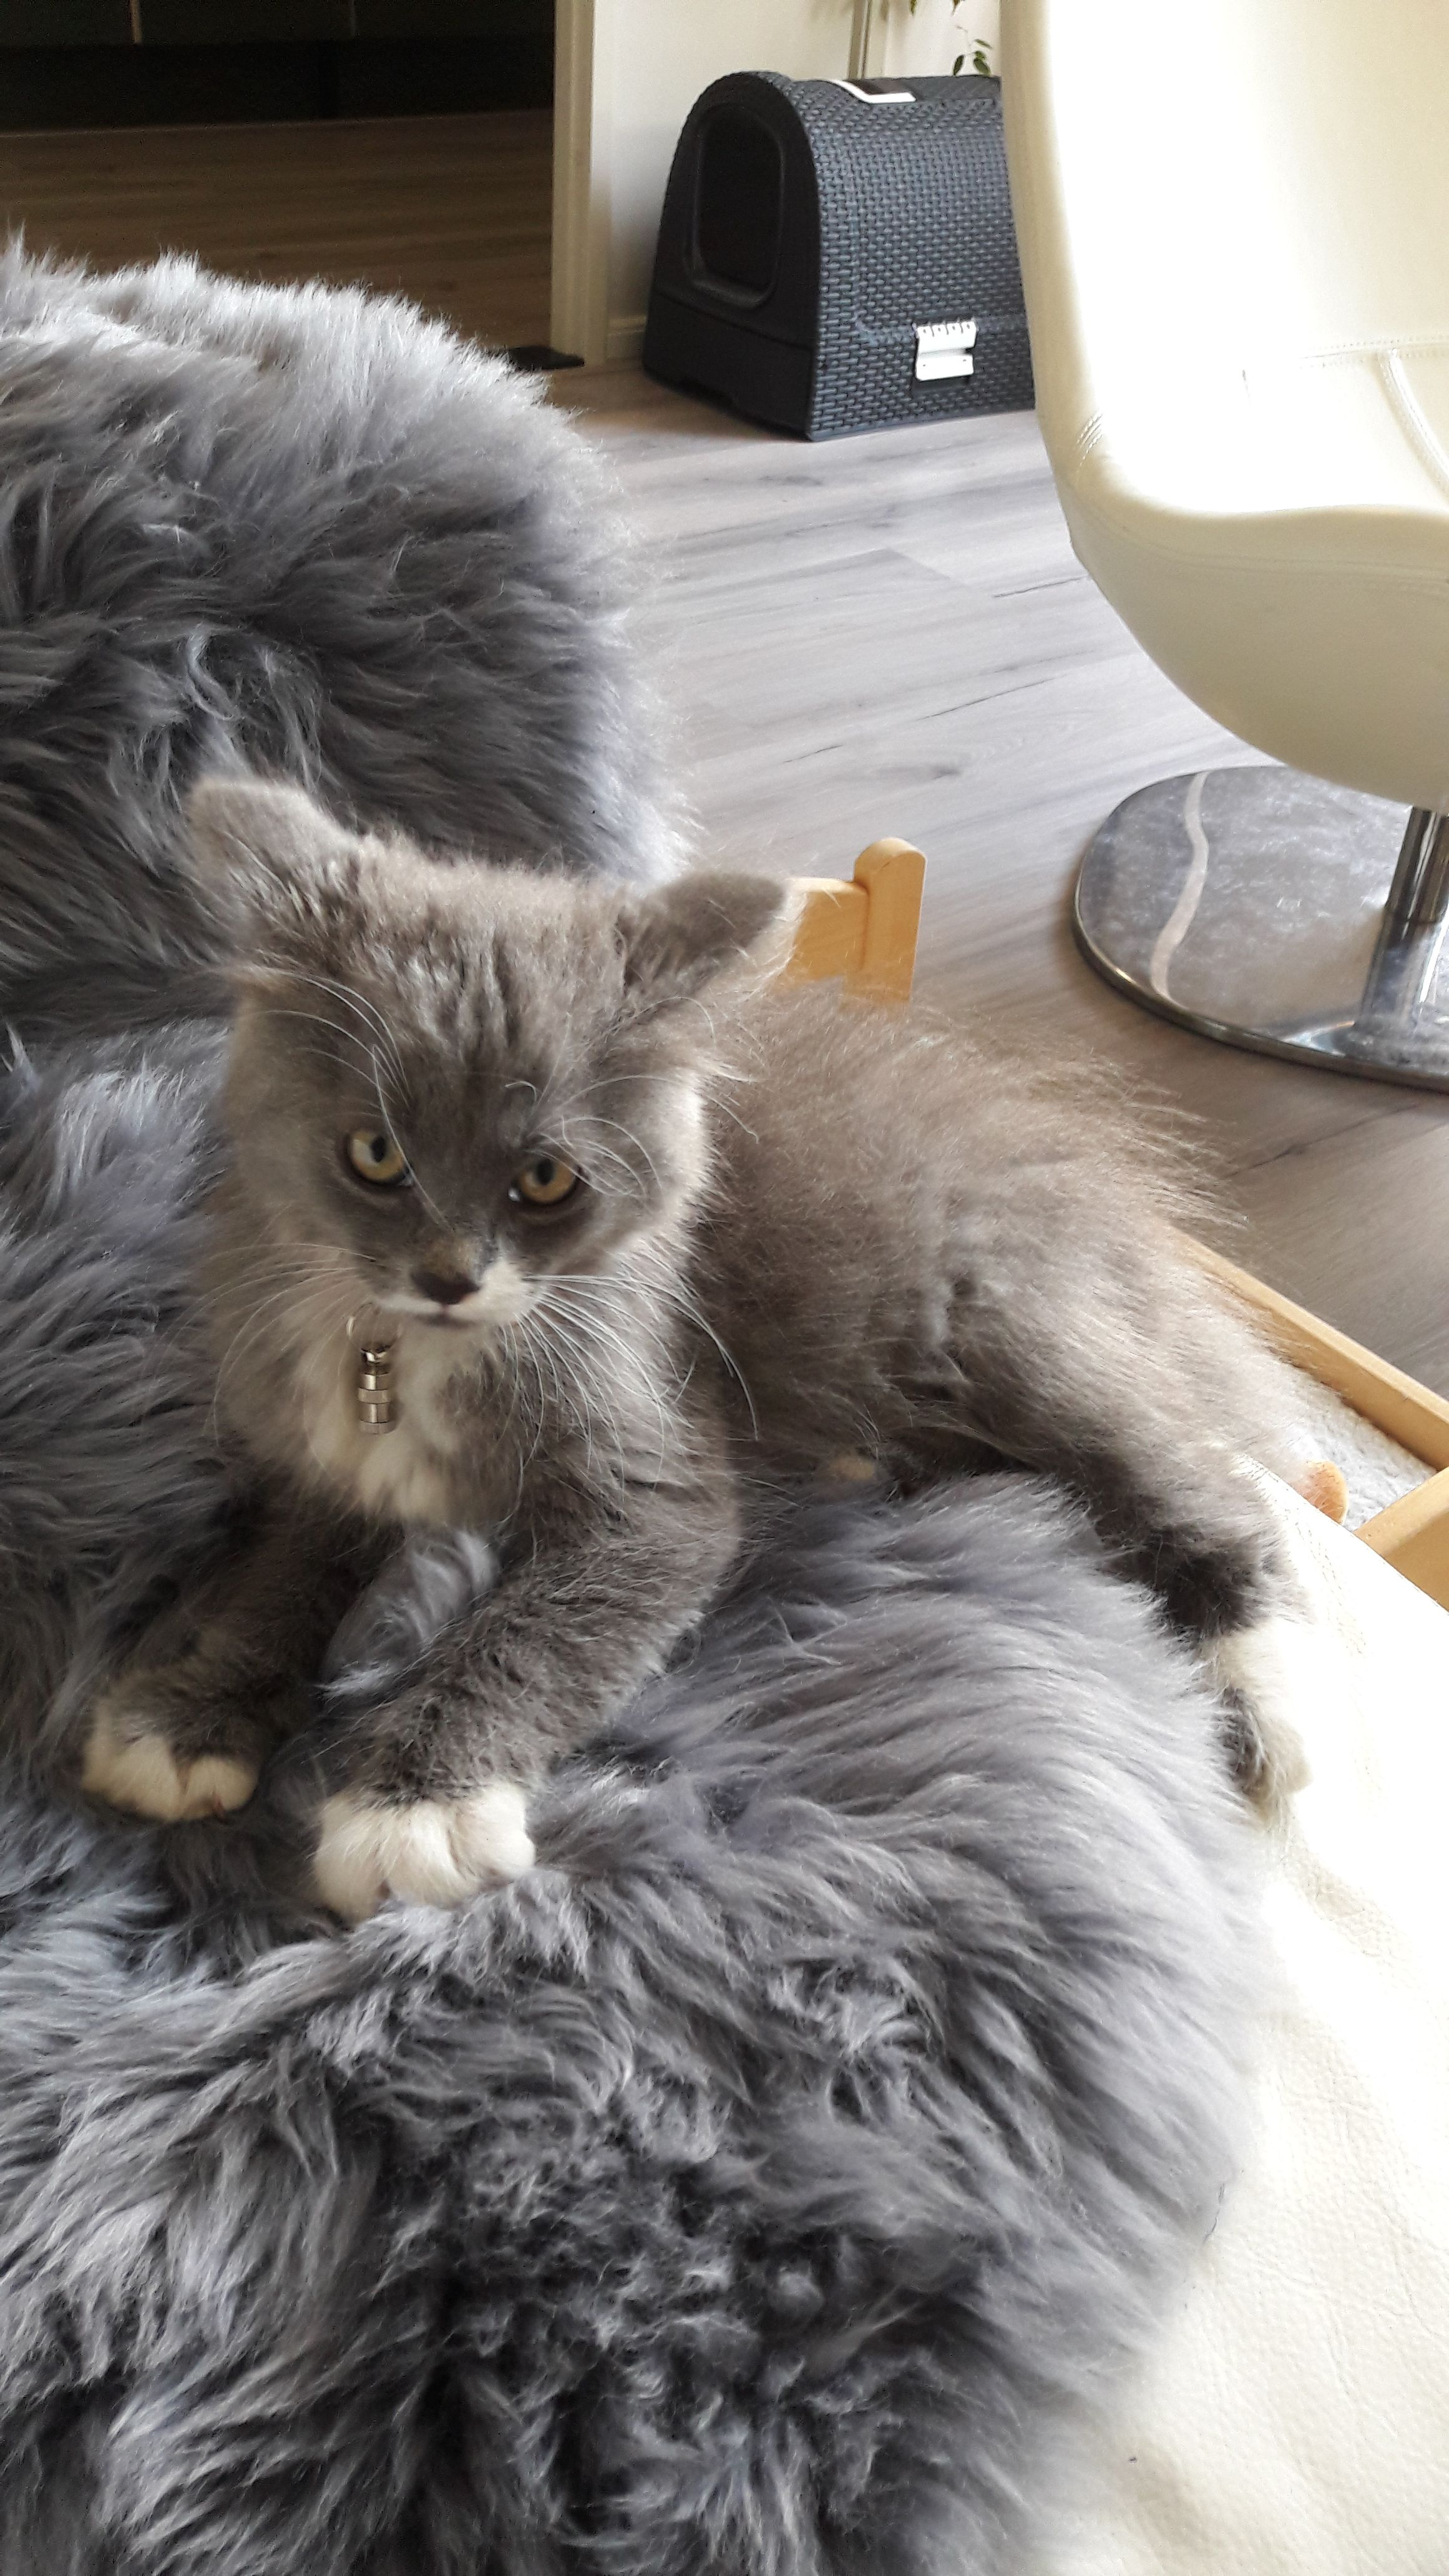 The Cuddable Beautiful Grey Kitten Of A Silver Tabby British